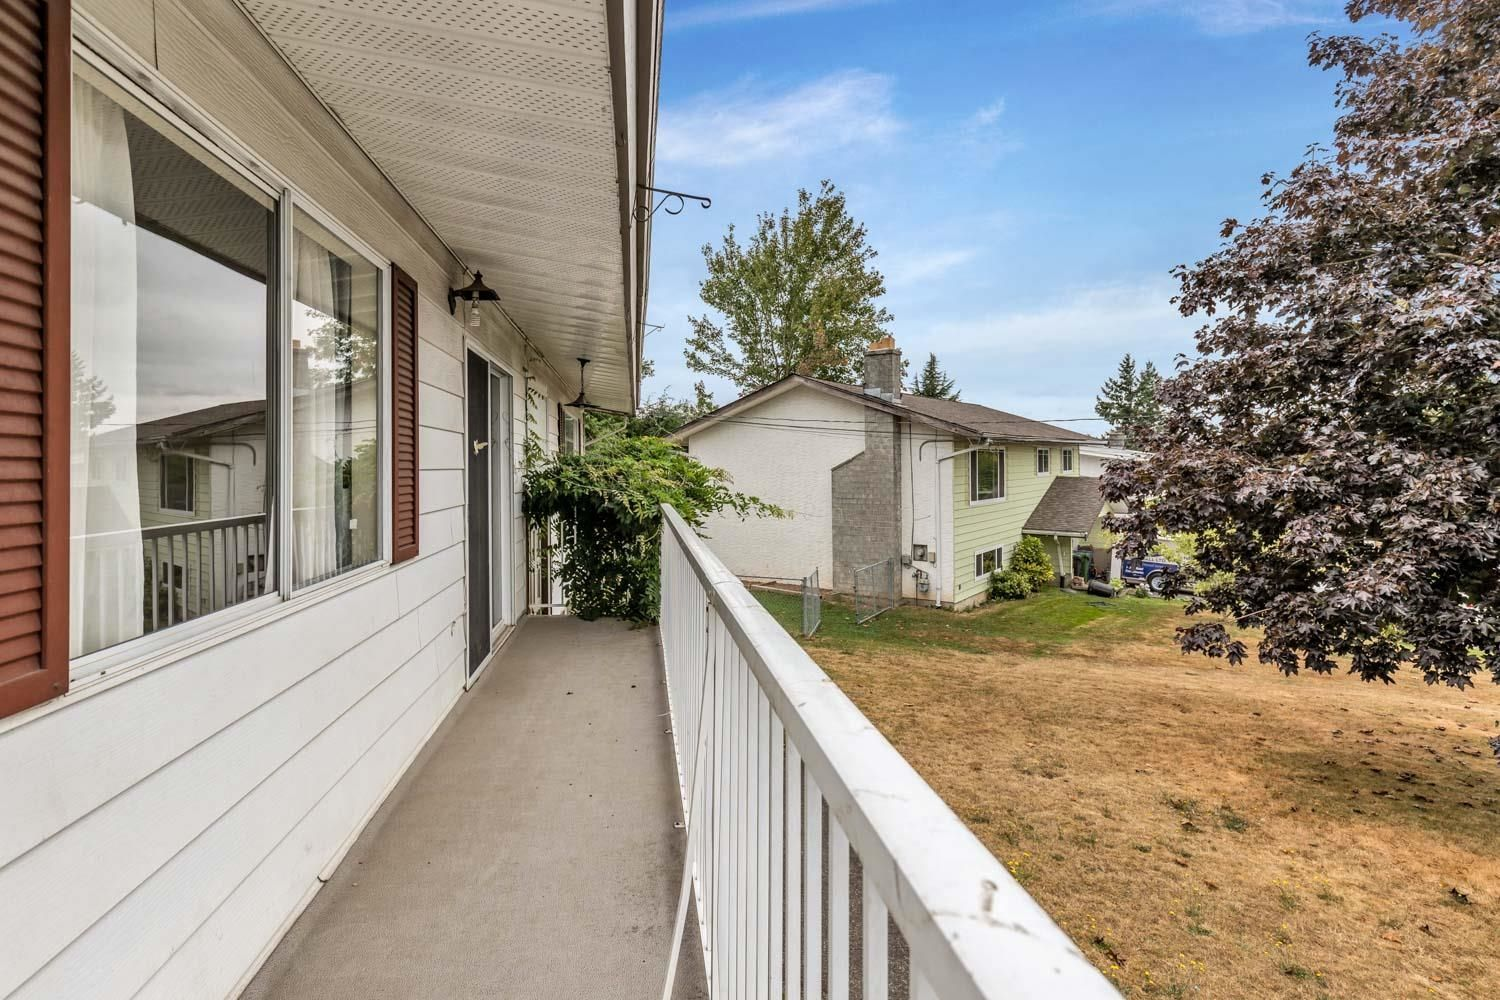 Photo 31: Photos: 2614 VALEMONT Crescent in Abbotsford: Abbotsford West House for sale : MLS®# R2611366